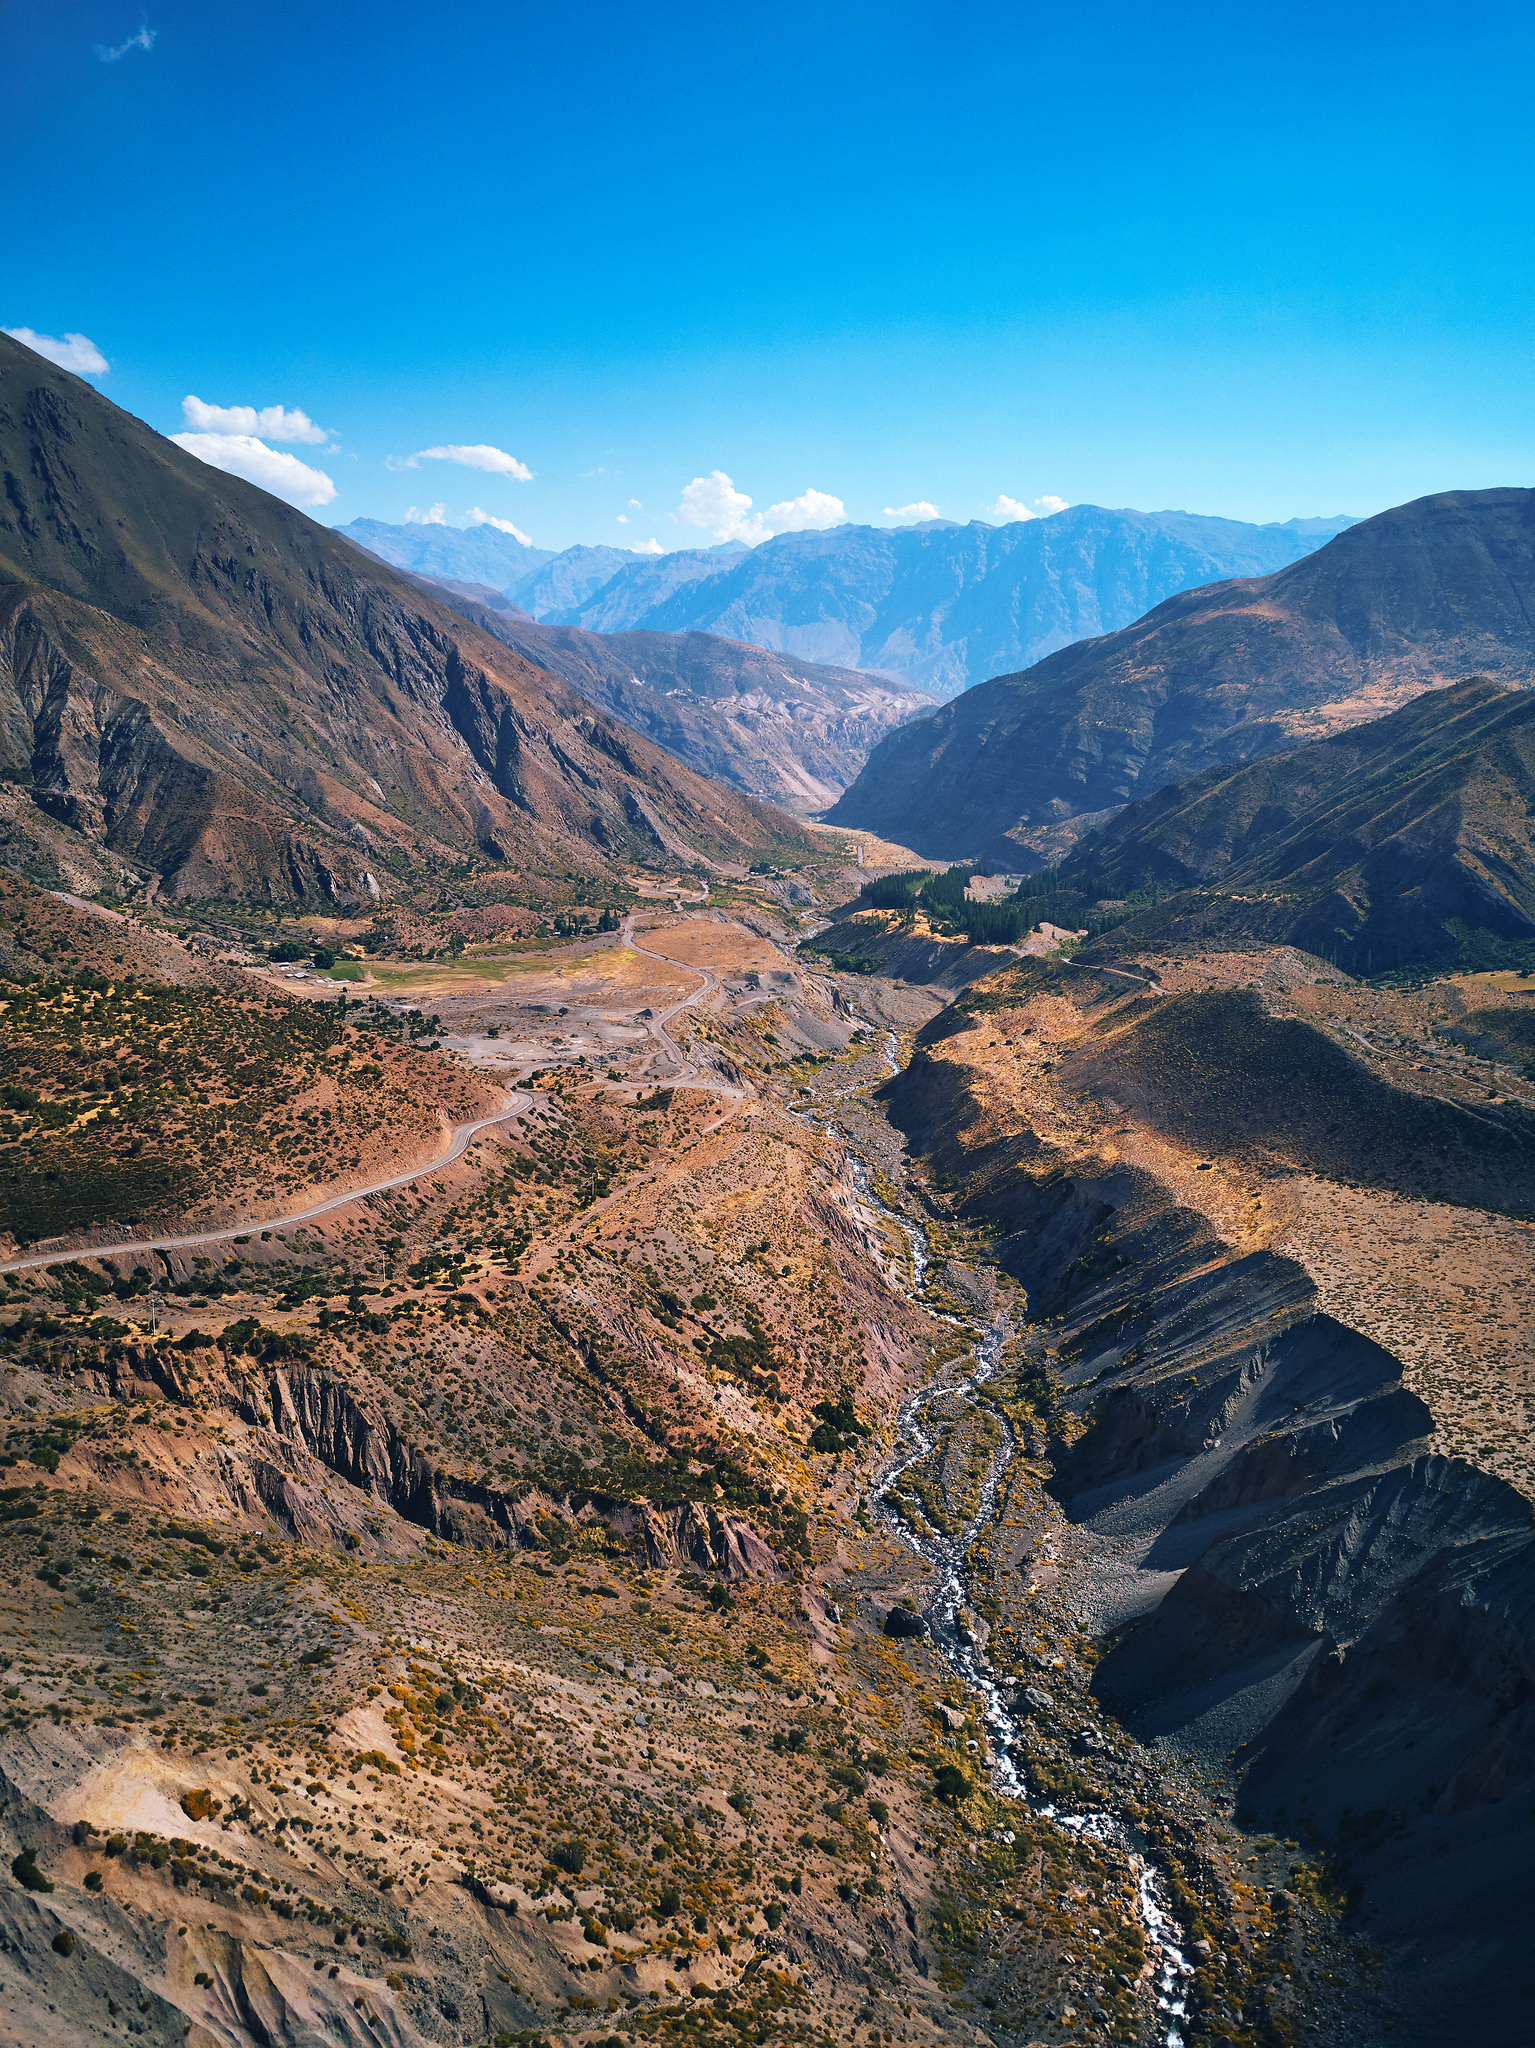 Aerial view of the Cajón del Maipo. Photo: Deensel/Flickr